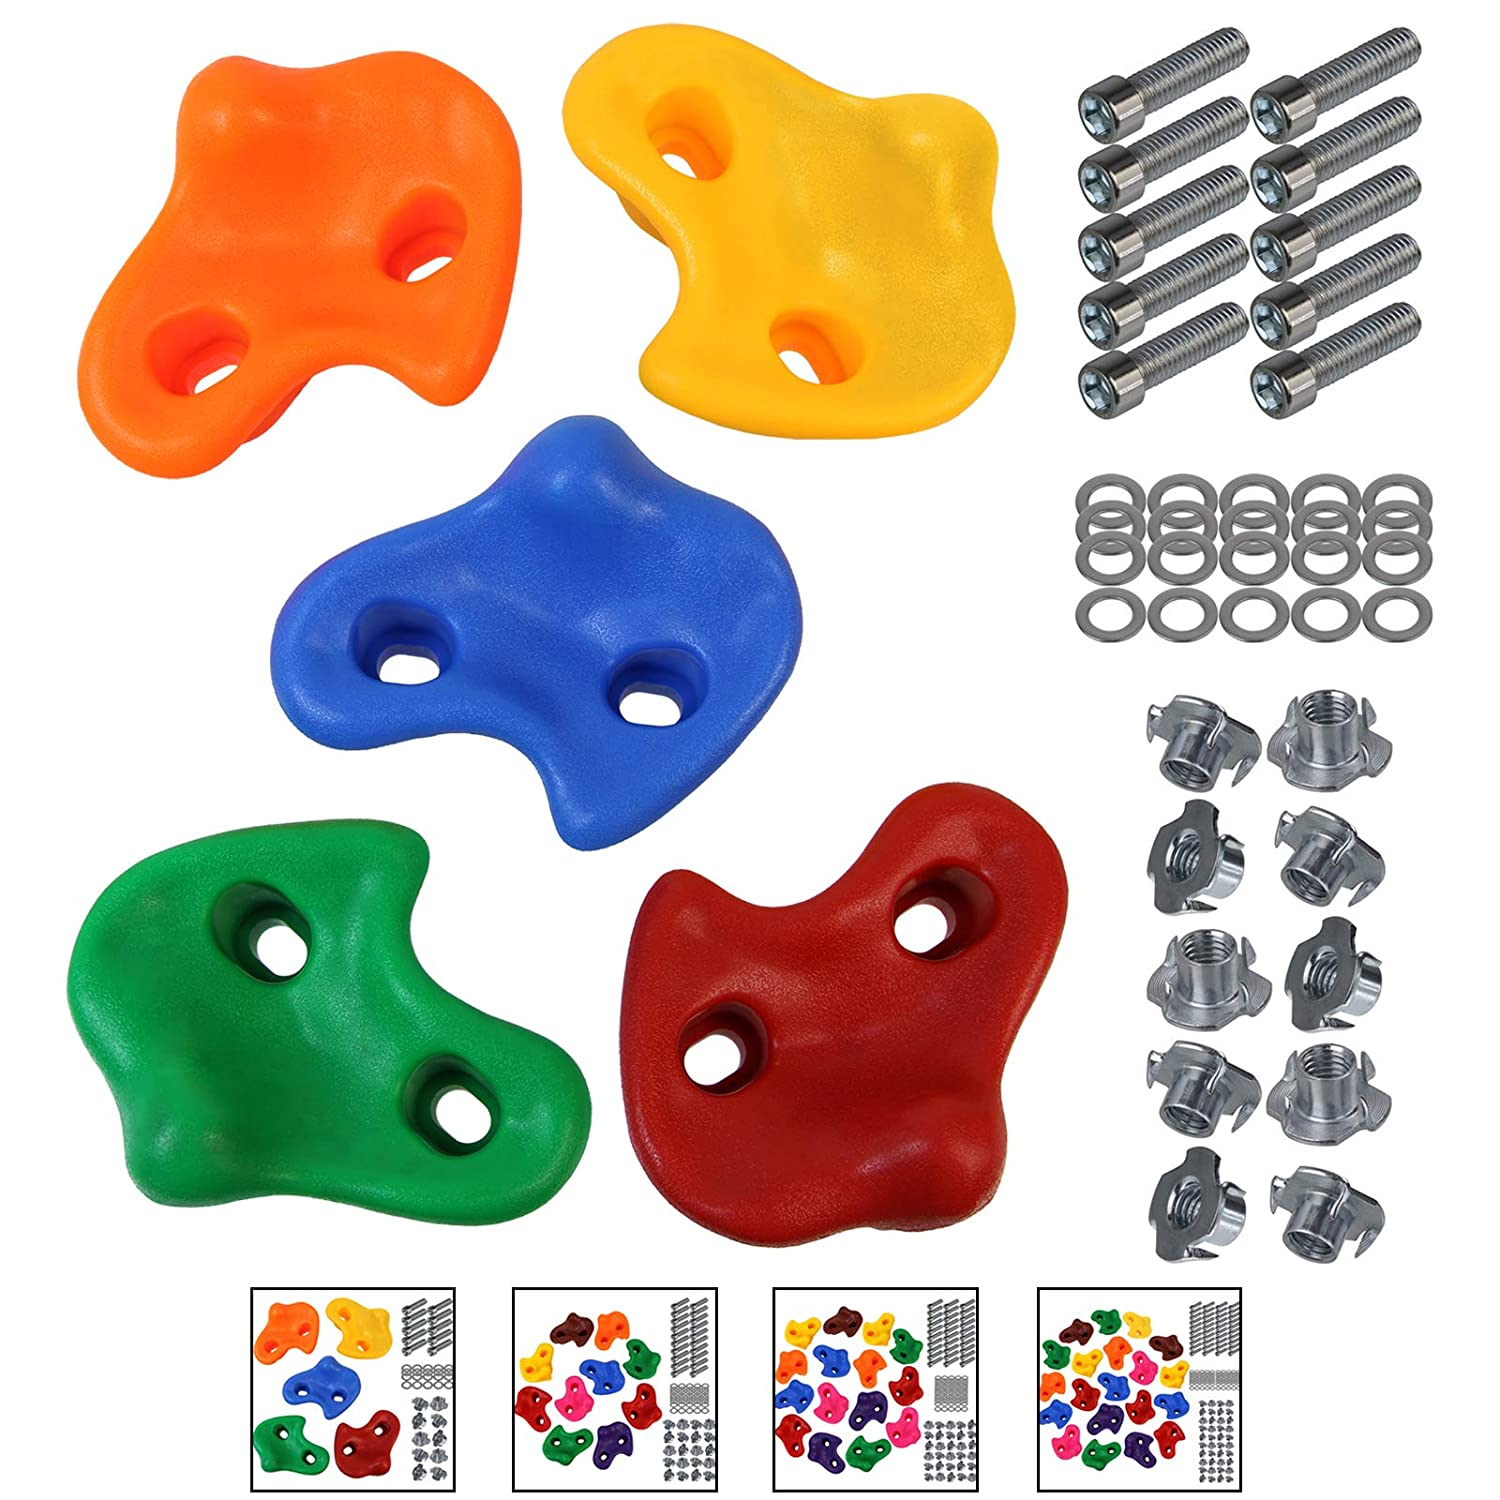 15 or 20 Childrens climbing holds climbing rocks for climbing wall varied includes mounting material ALPIDEX 5 10 Packing Unit:30 pieces Colour:Mixed Colours